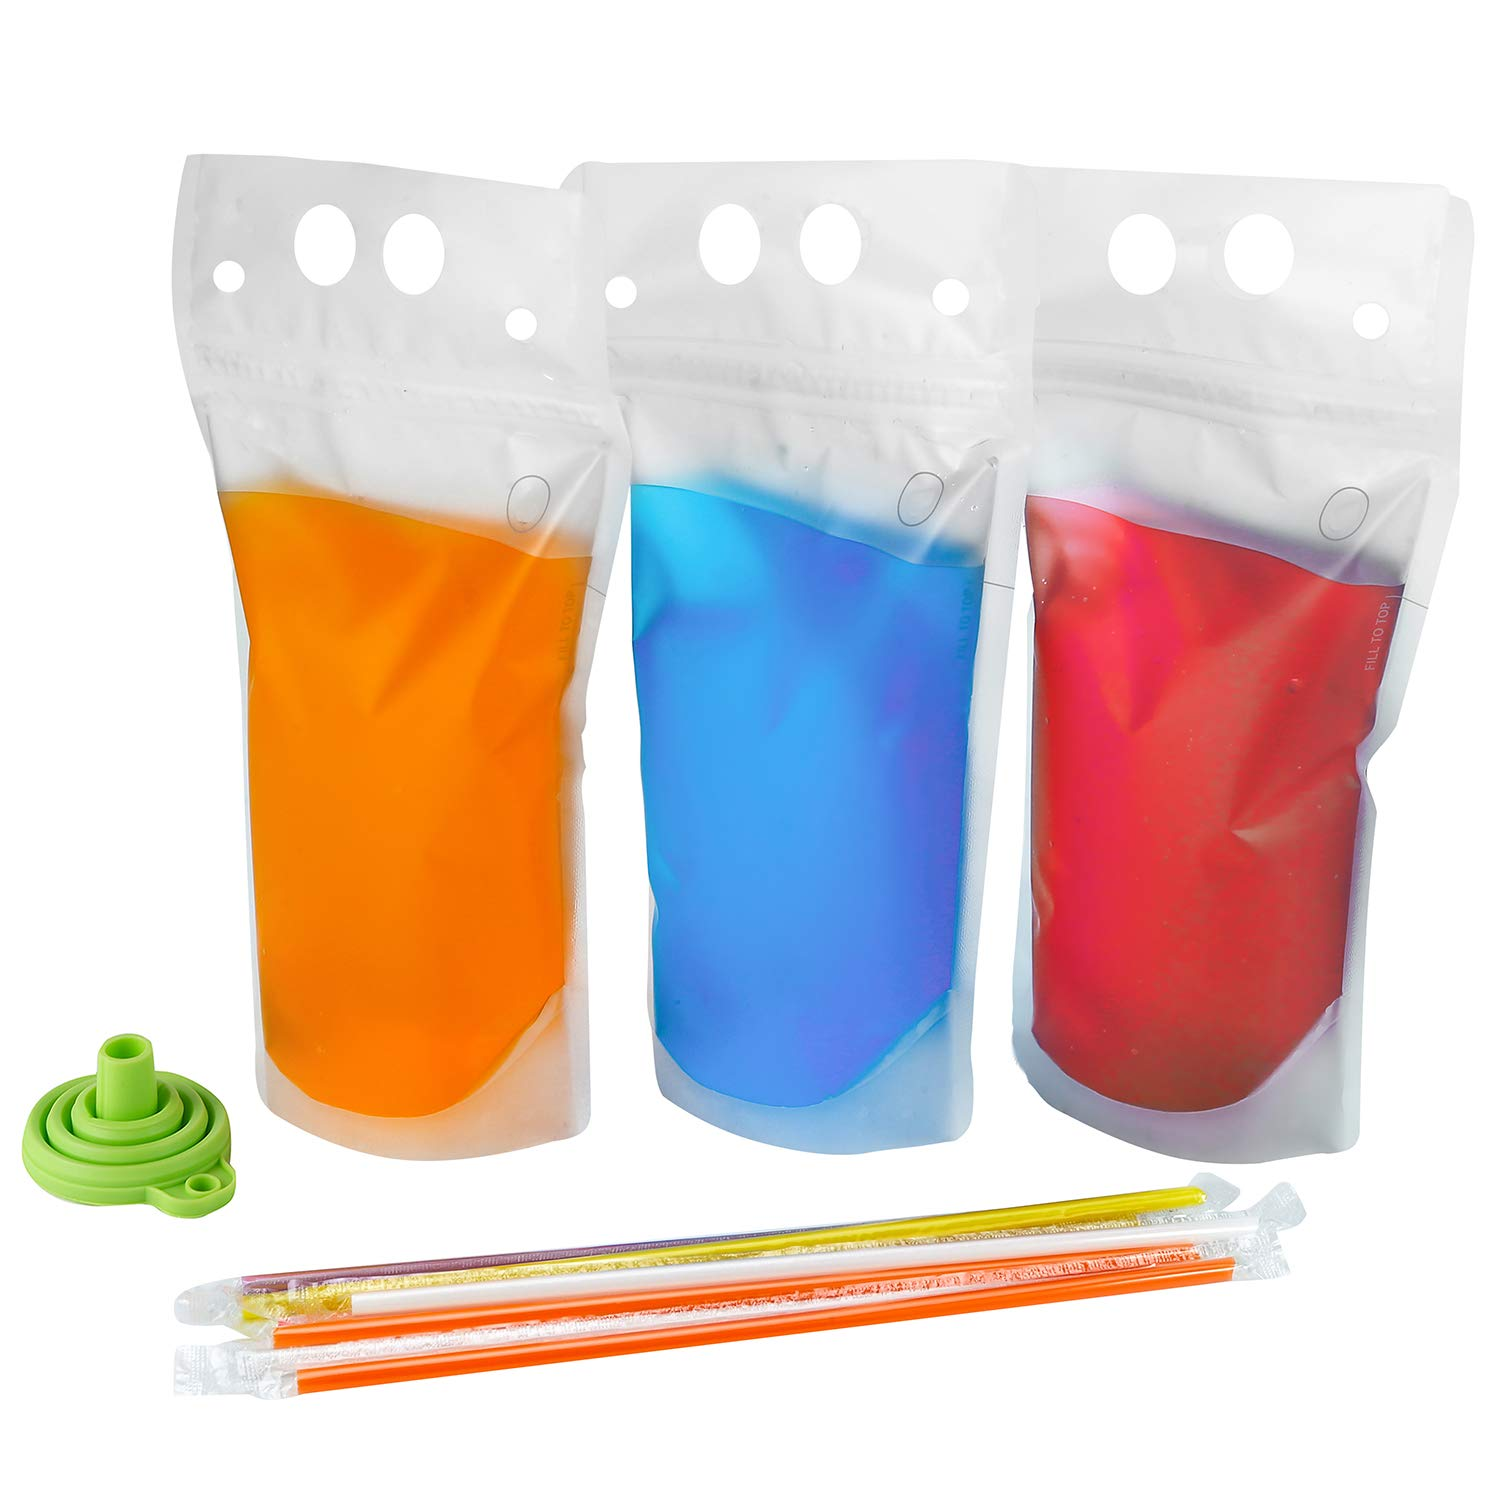 100PCS Drink New Orleans Mall Pouches Surprise price with Bags Straw Juice Smoothie